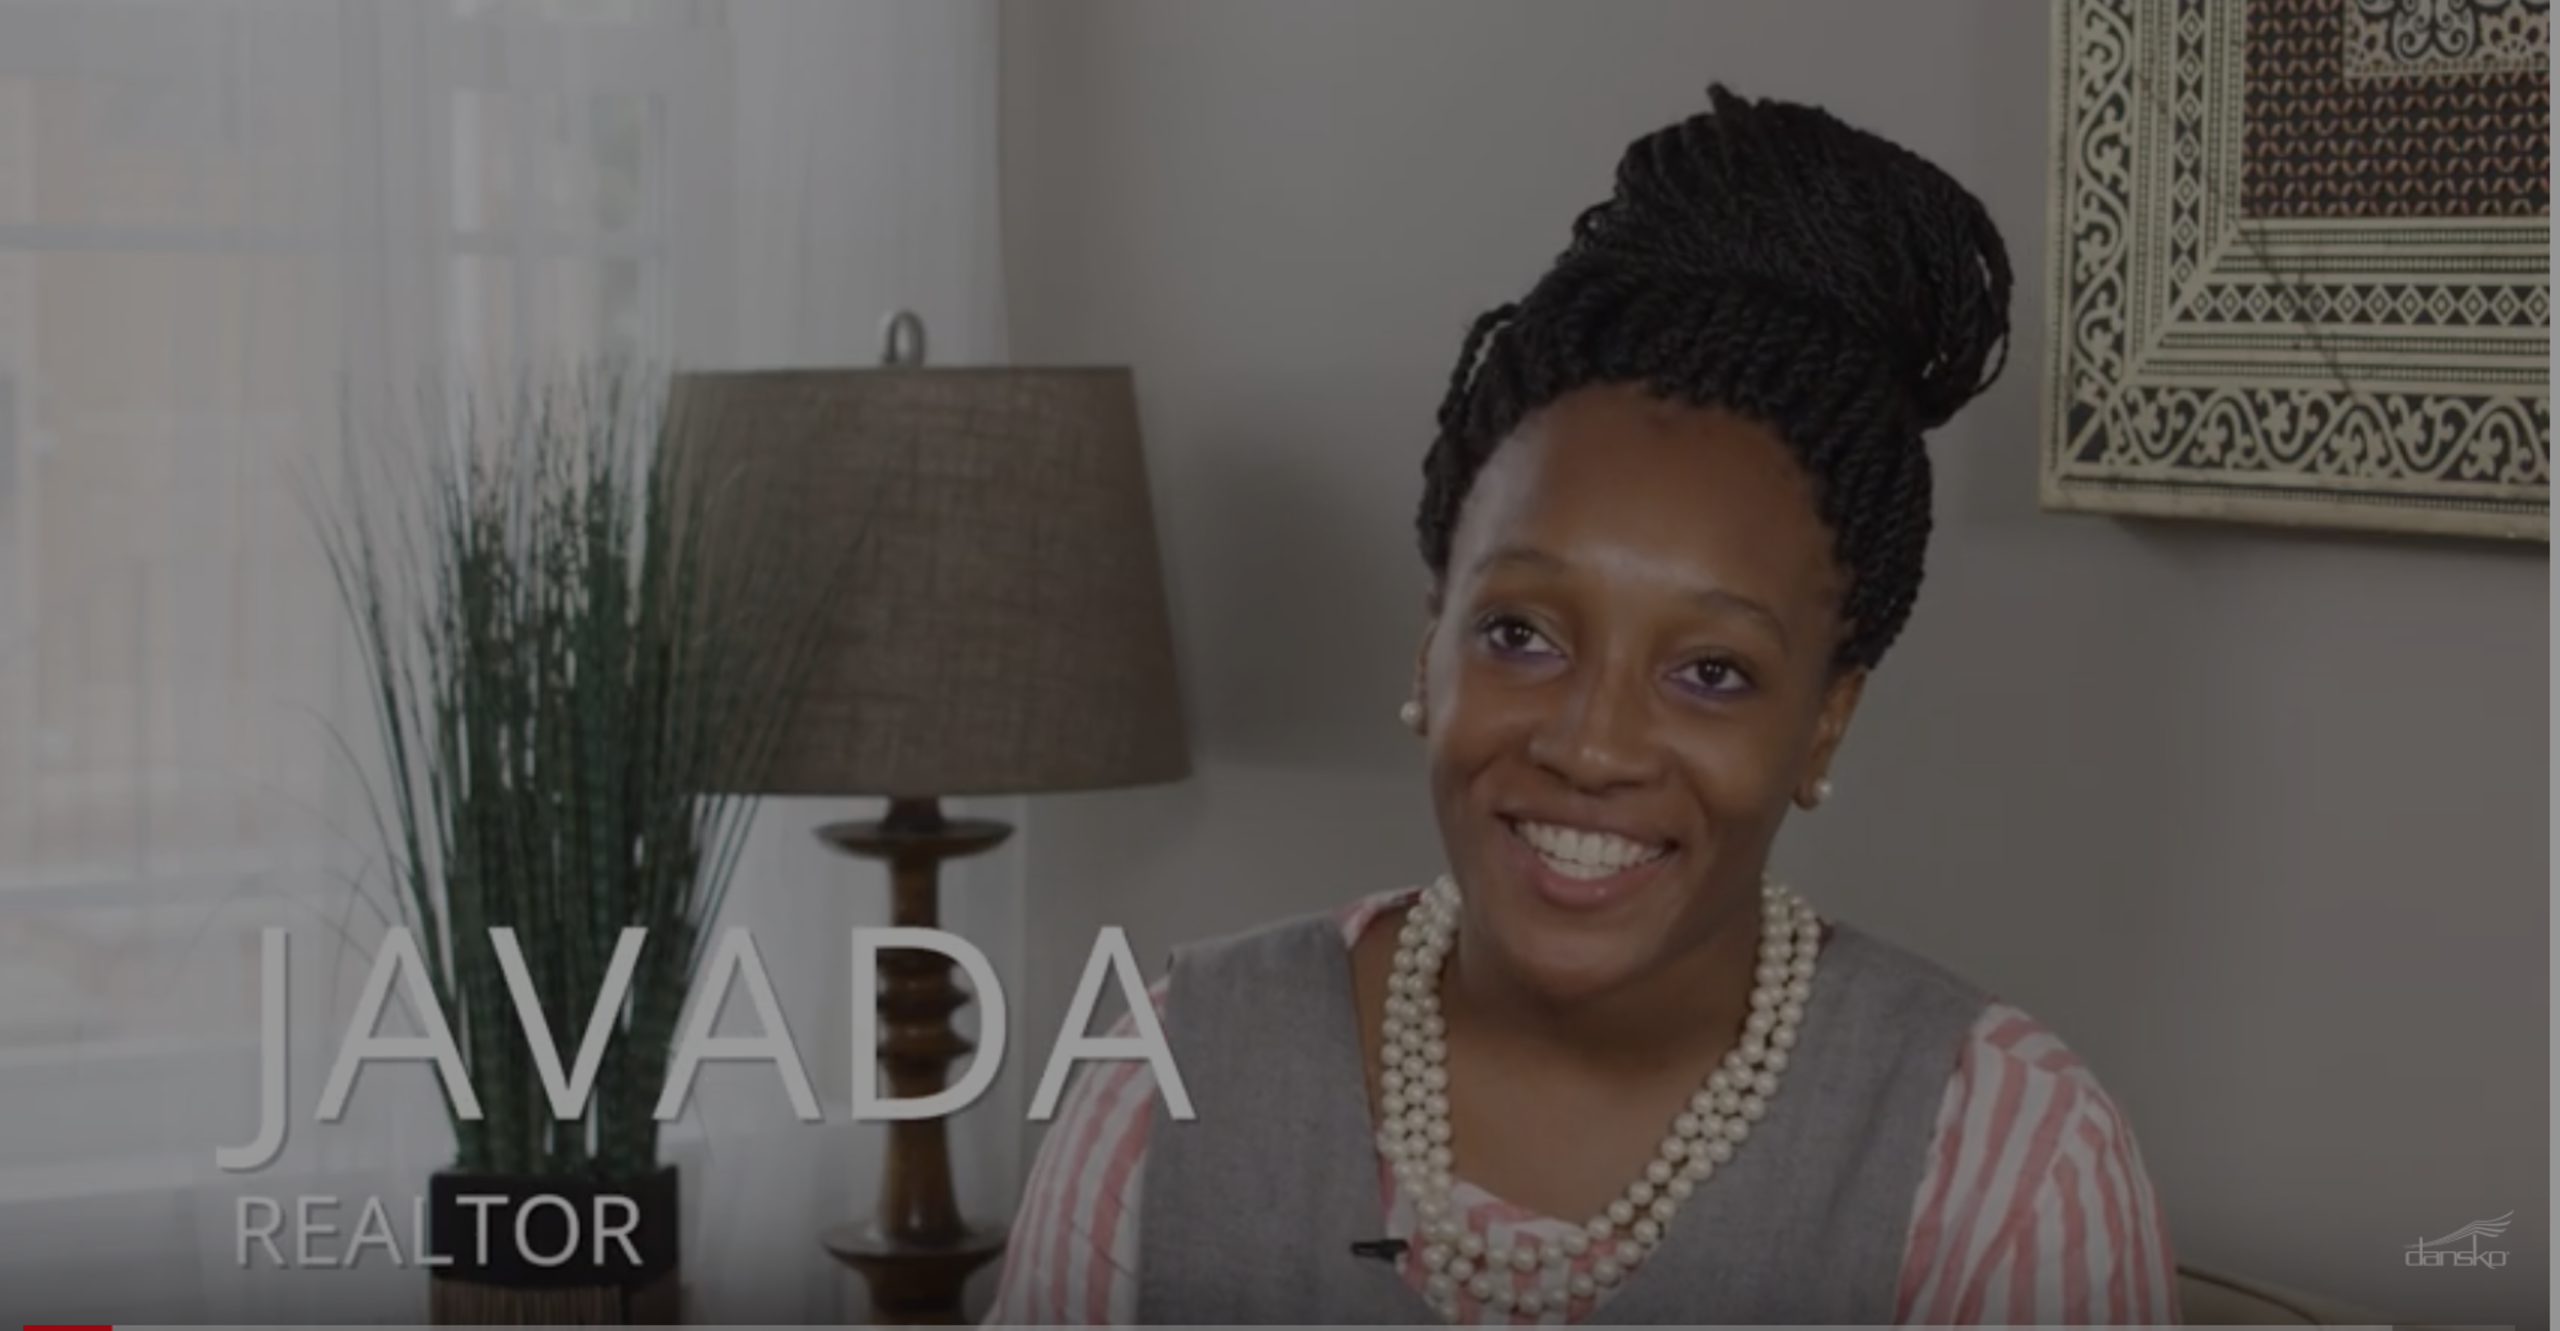 Embrace Your Journey: Javada